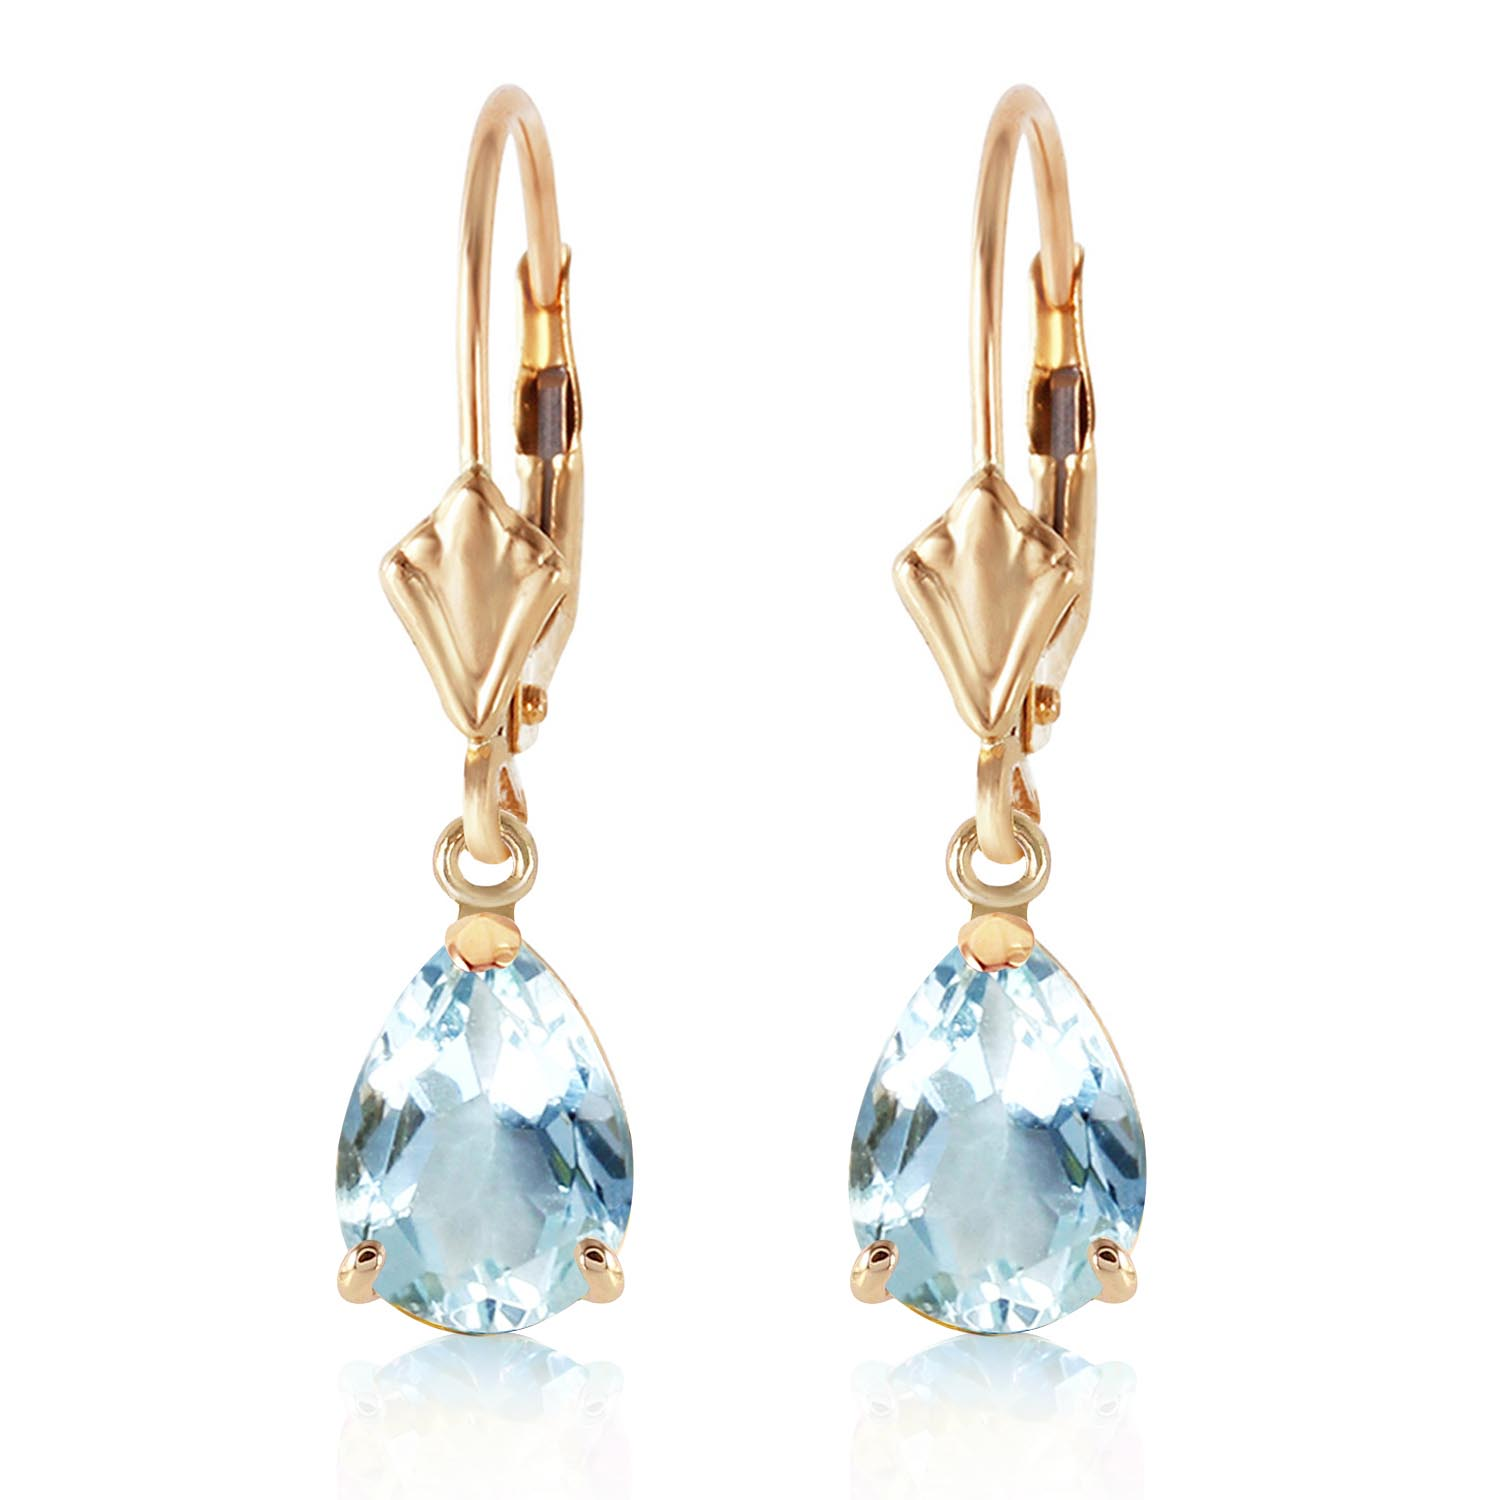 Aquamarine Belle Drop Earrings 2.85ctw in 9ct Gold